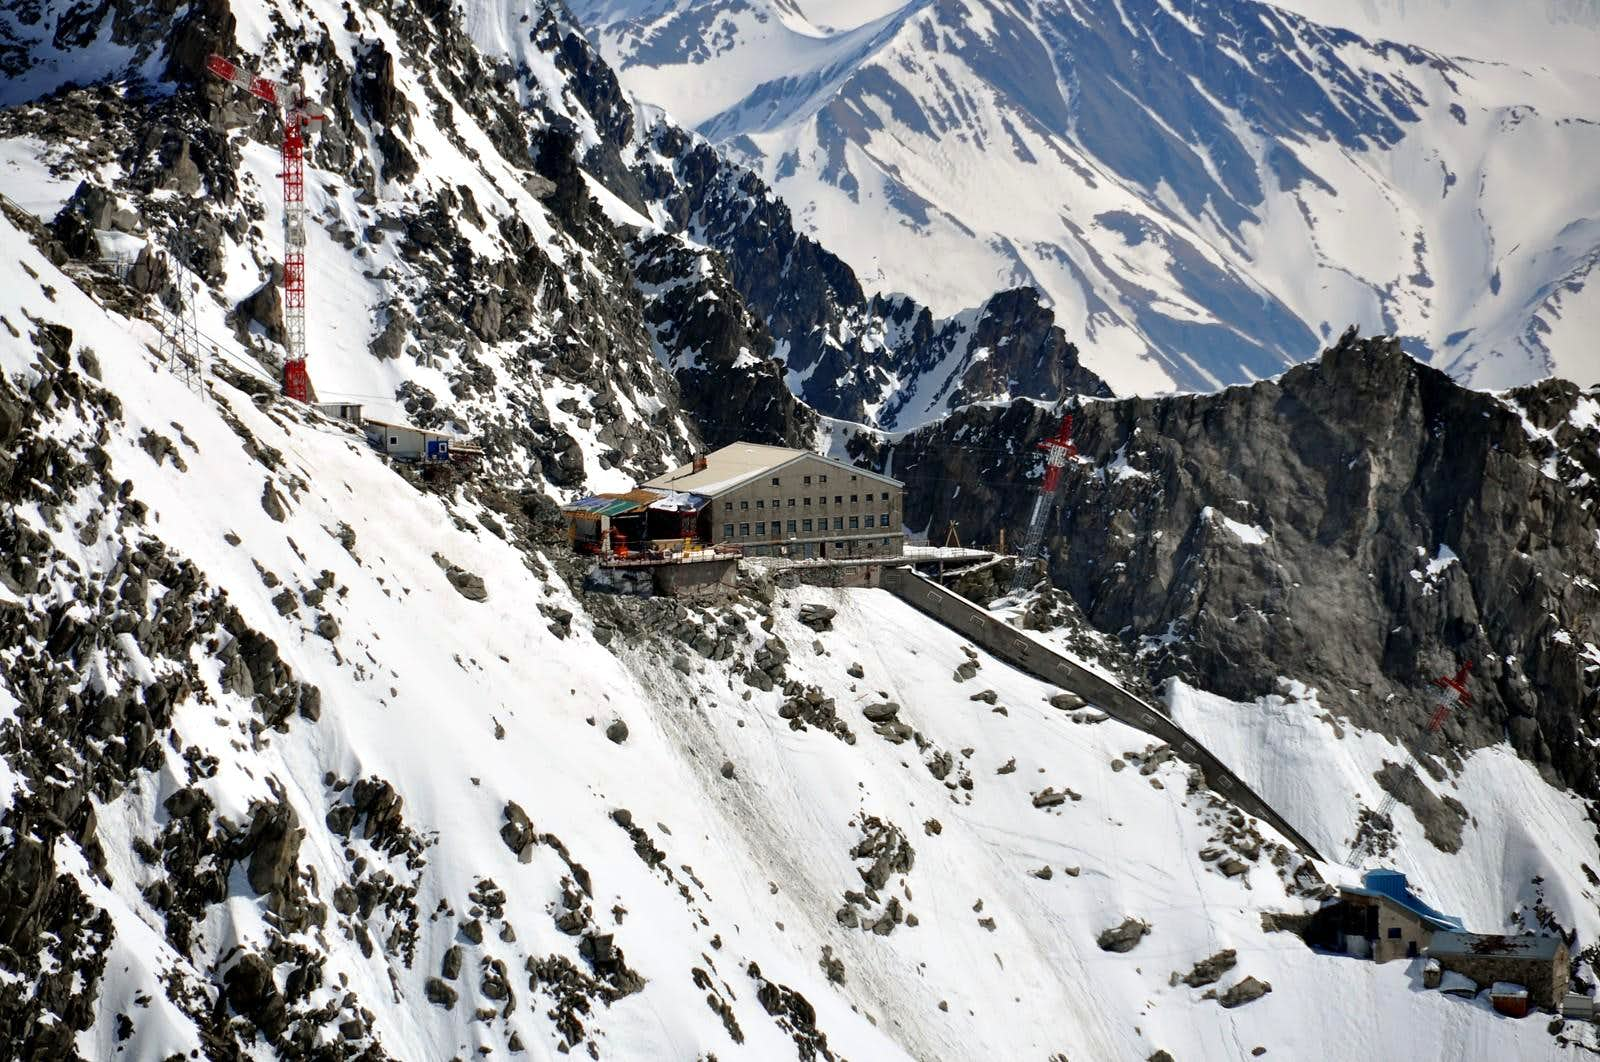 Alpine REFUGES in the Aosta Valley <b>(Veny Valley)</b>